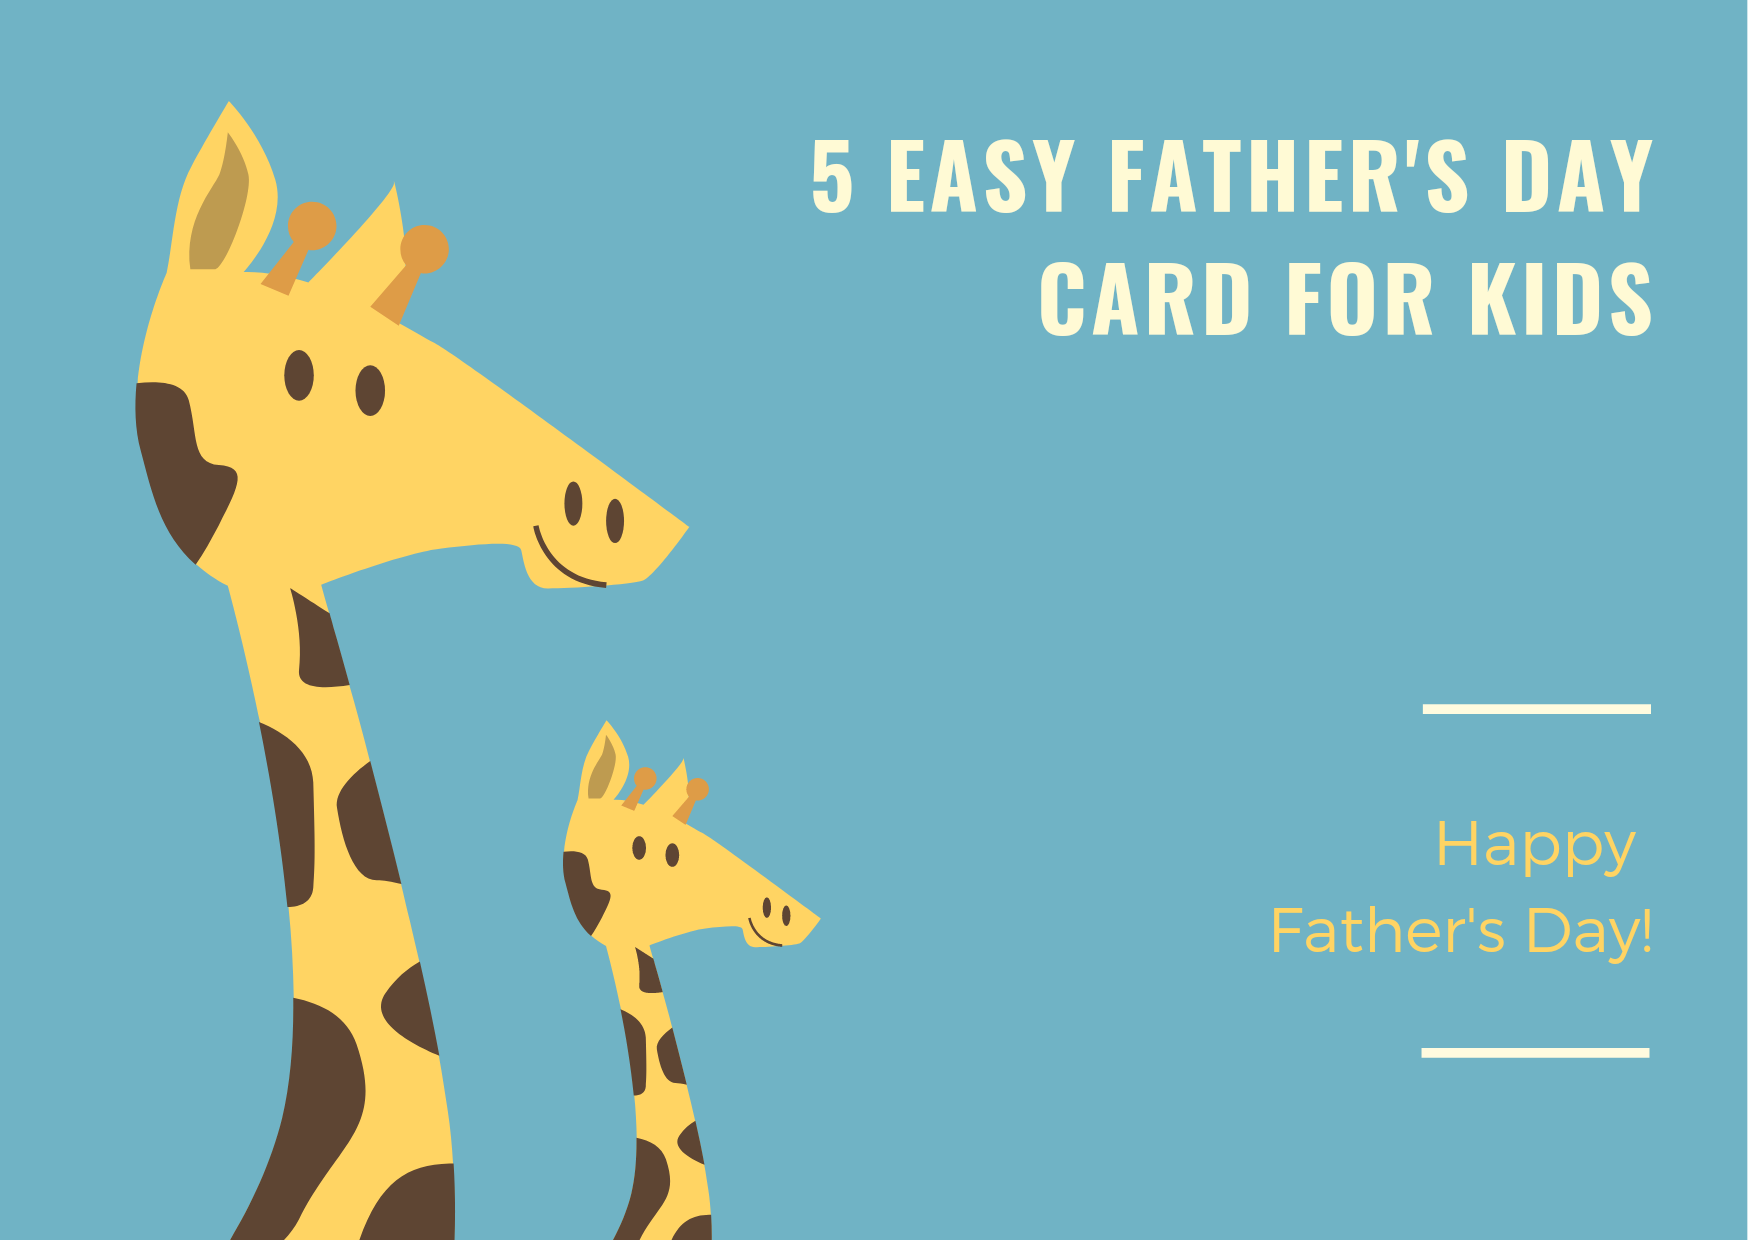 5 easy Father's day cards for kids